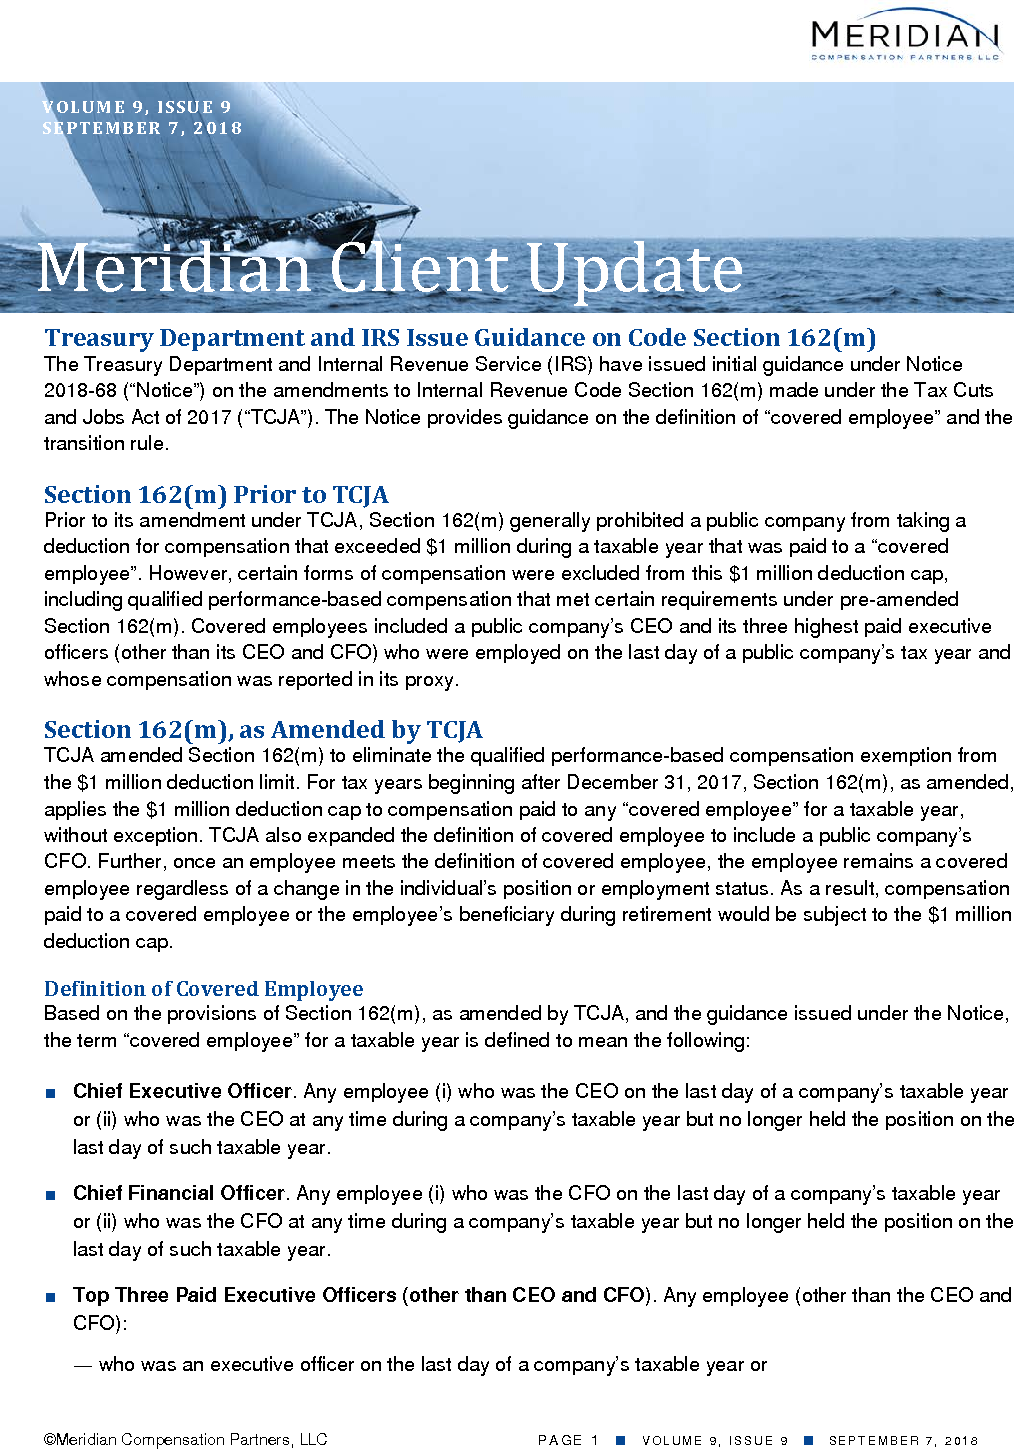 Treasury Department and IRS Issue Guidance on Code Section 162(m) (PDF)